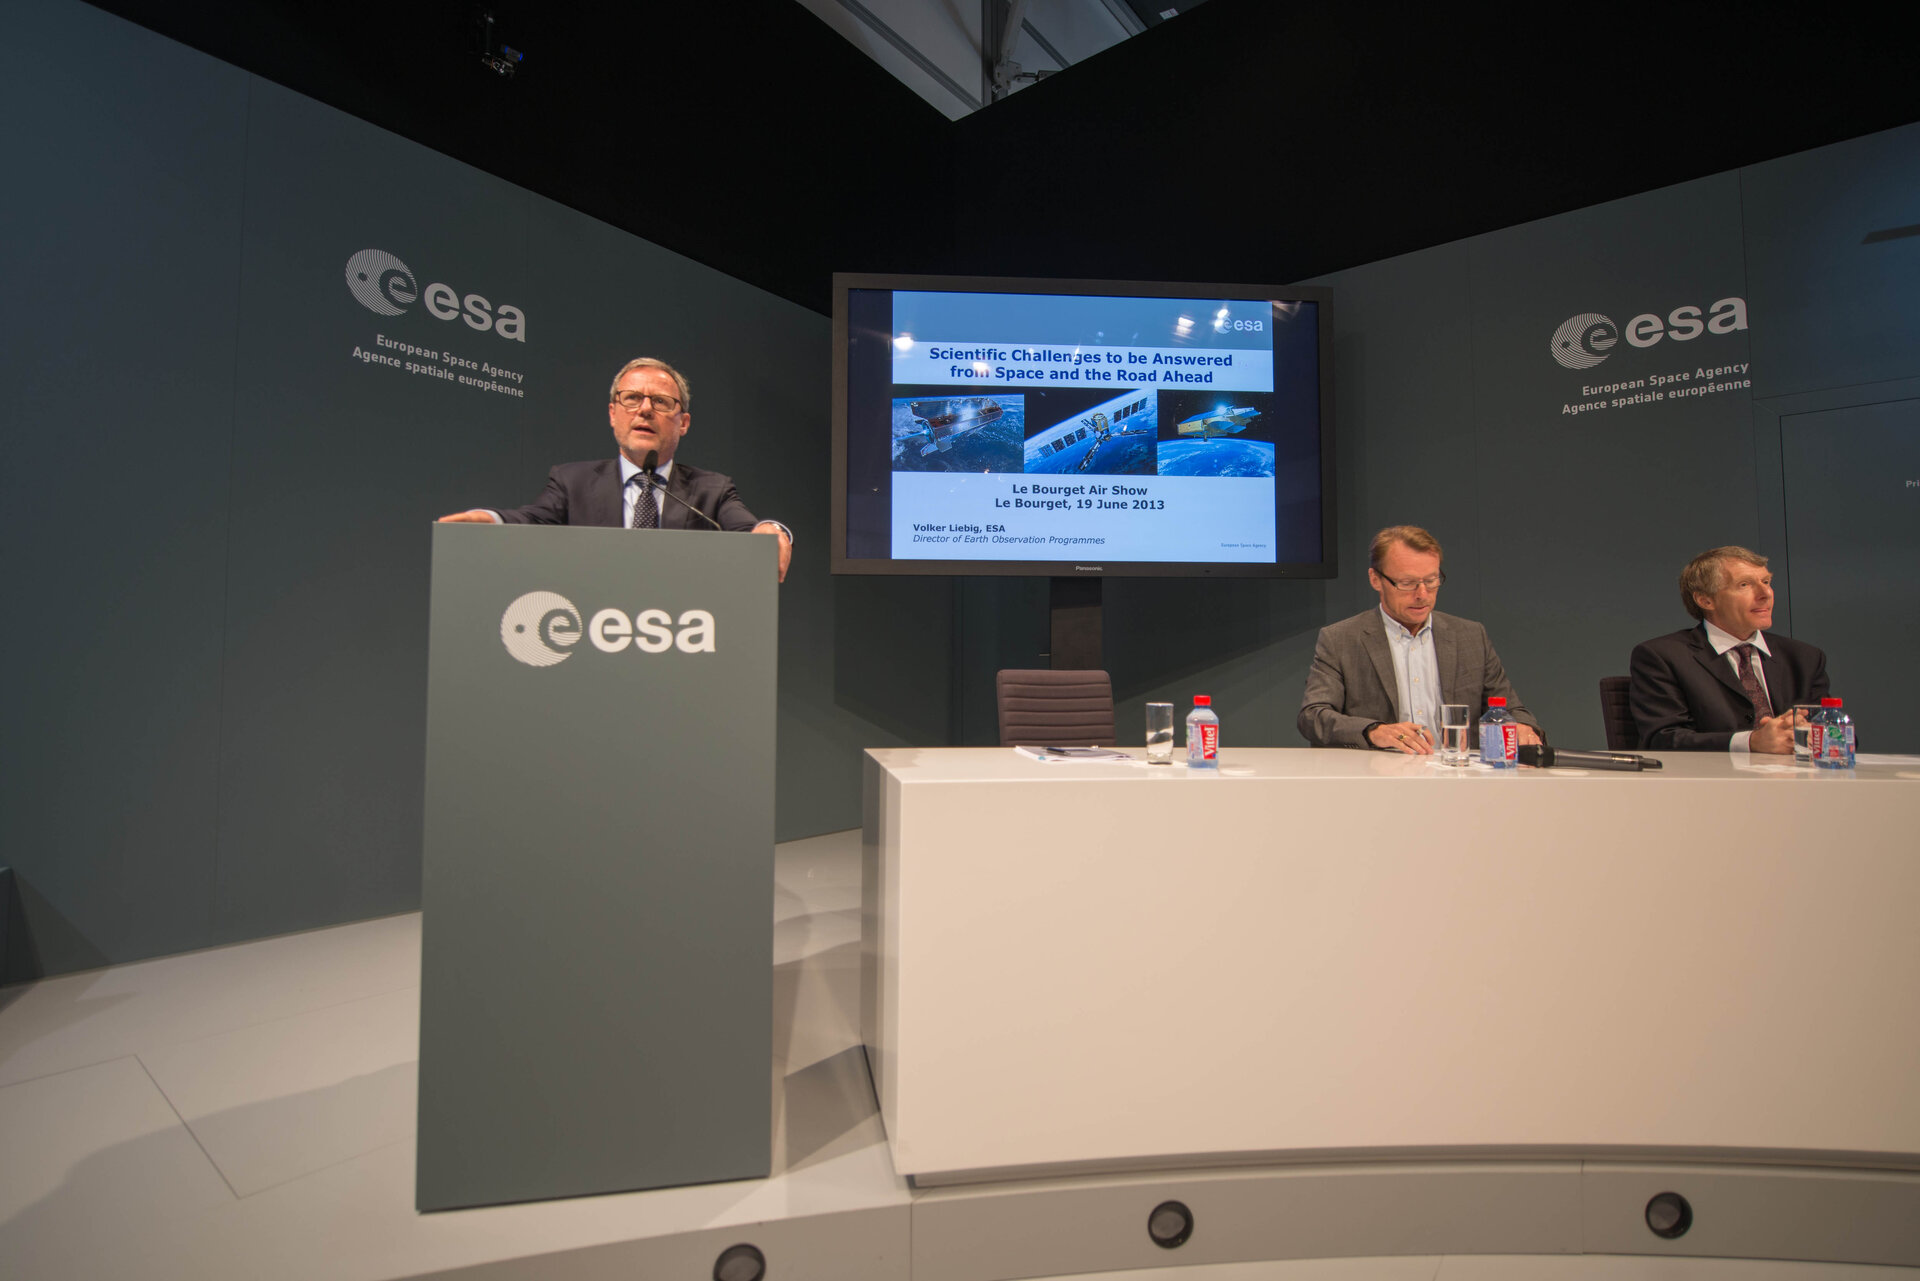 Presentation of Biomass, the 7th Earth Explorer satellite